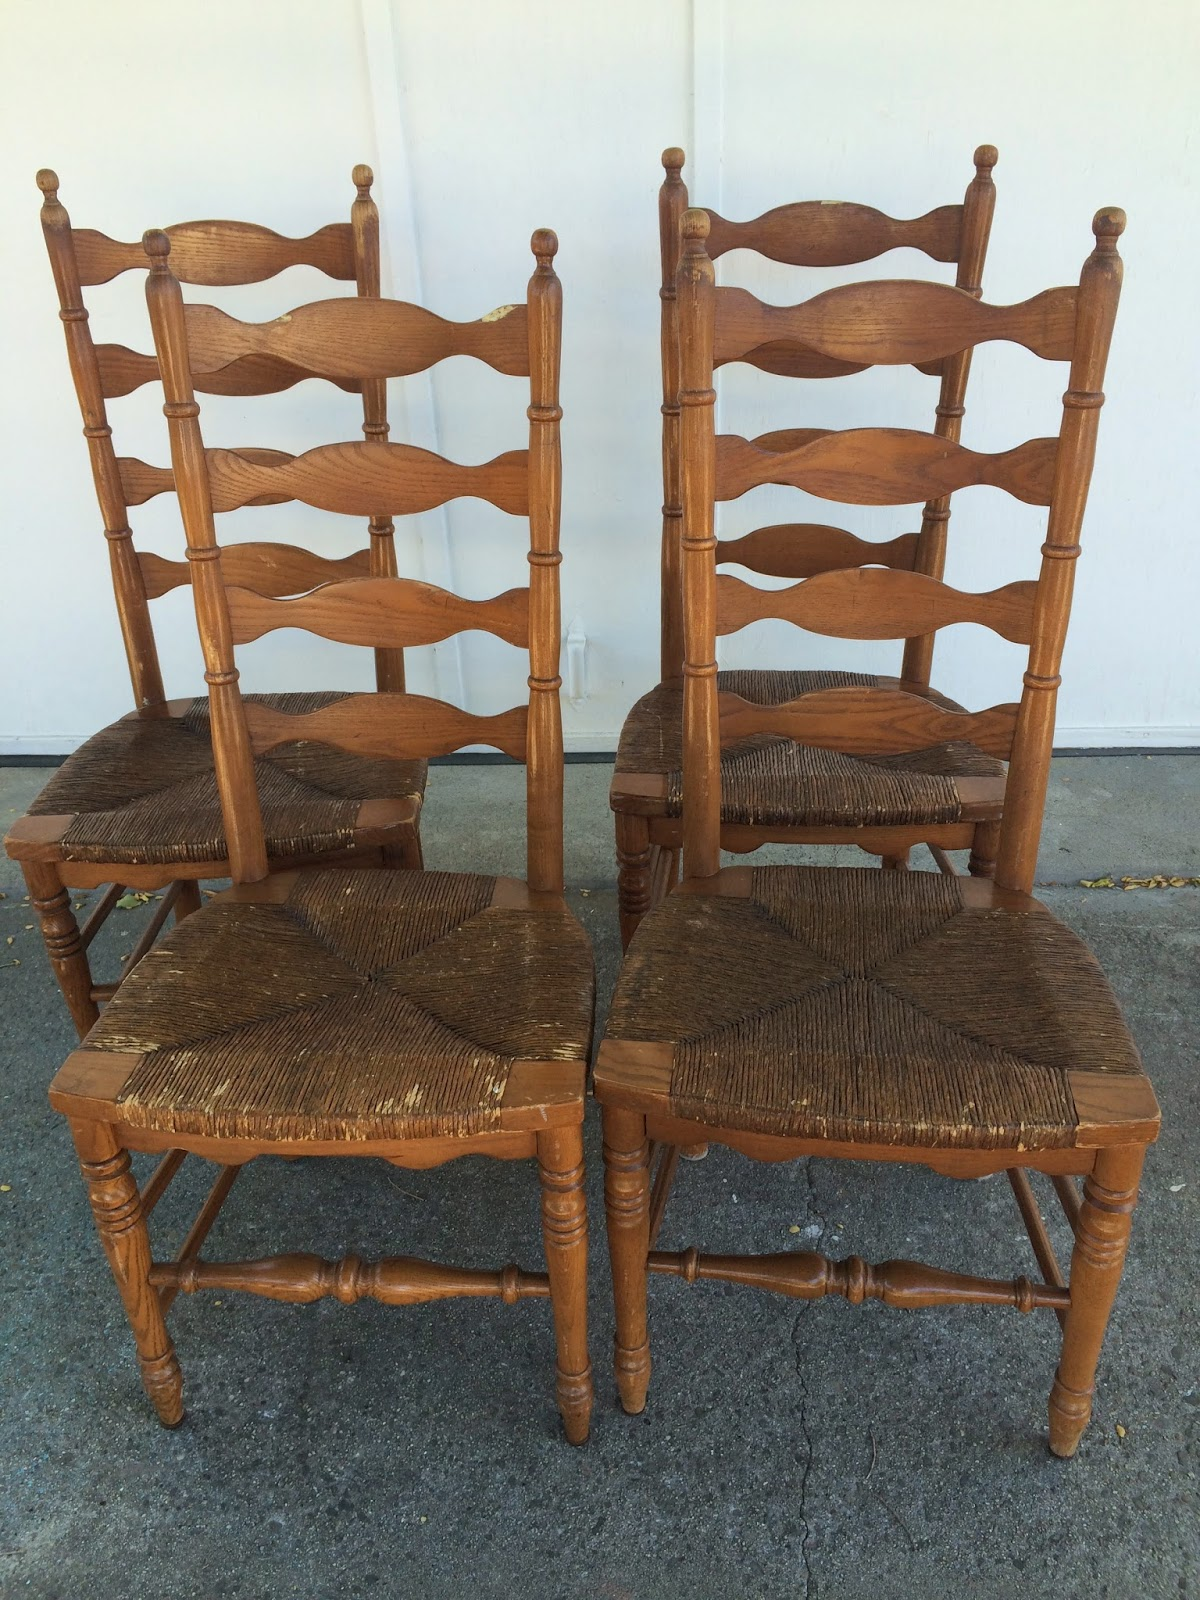 D D s Cottage and Design 4 Ladder Back Chairs with Rush Seats